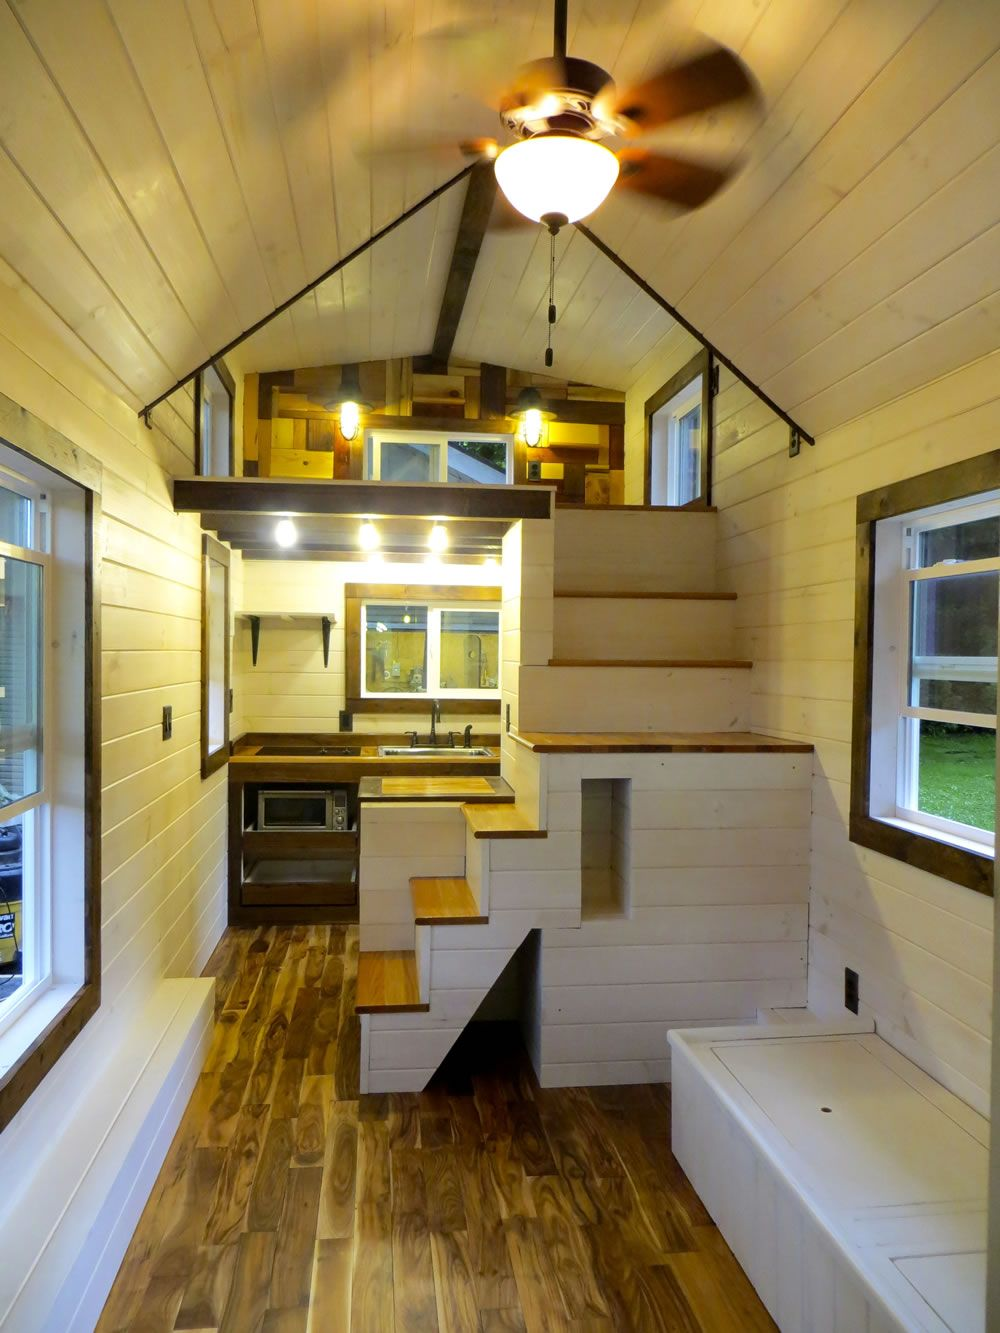 Wonderful Tiny Houses Interior Impeccably Designed House To Design